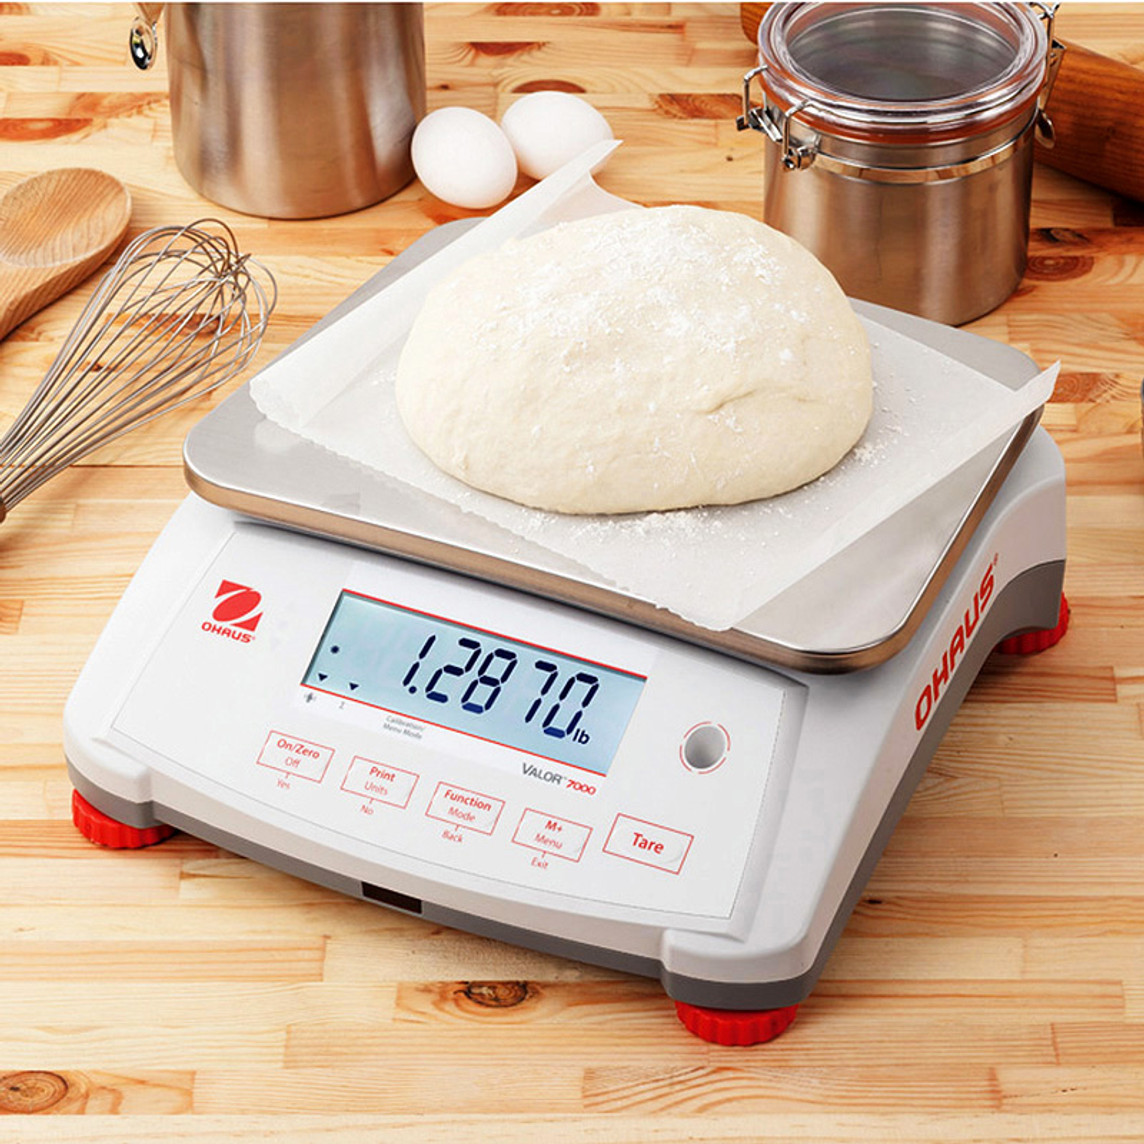 Ohaus Valor 7000 Food Scales